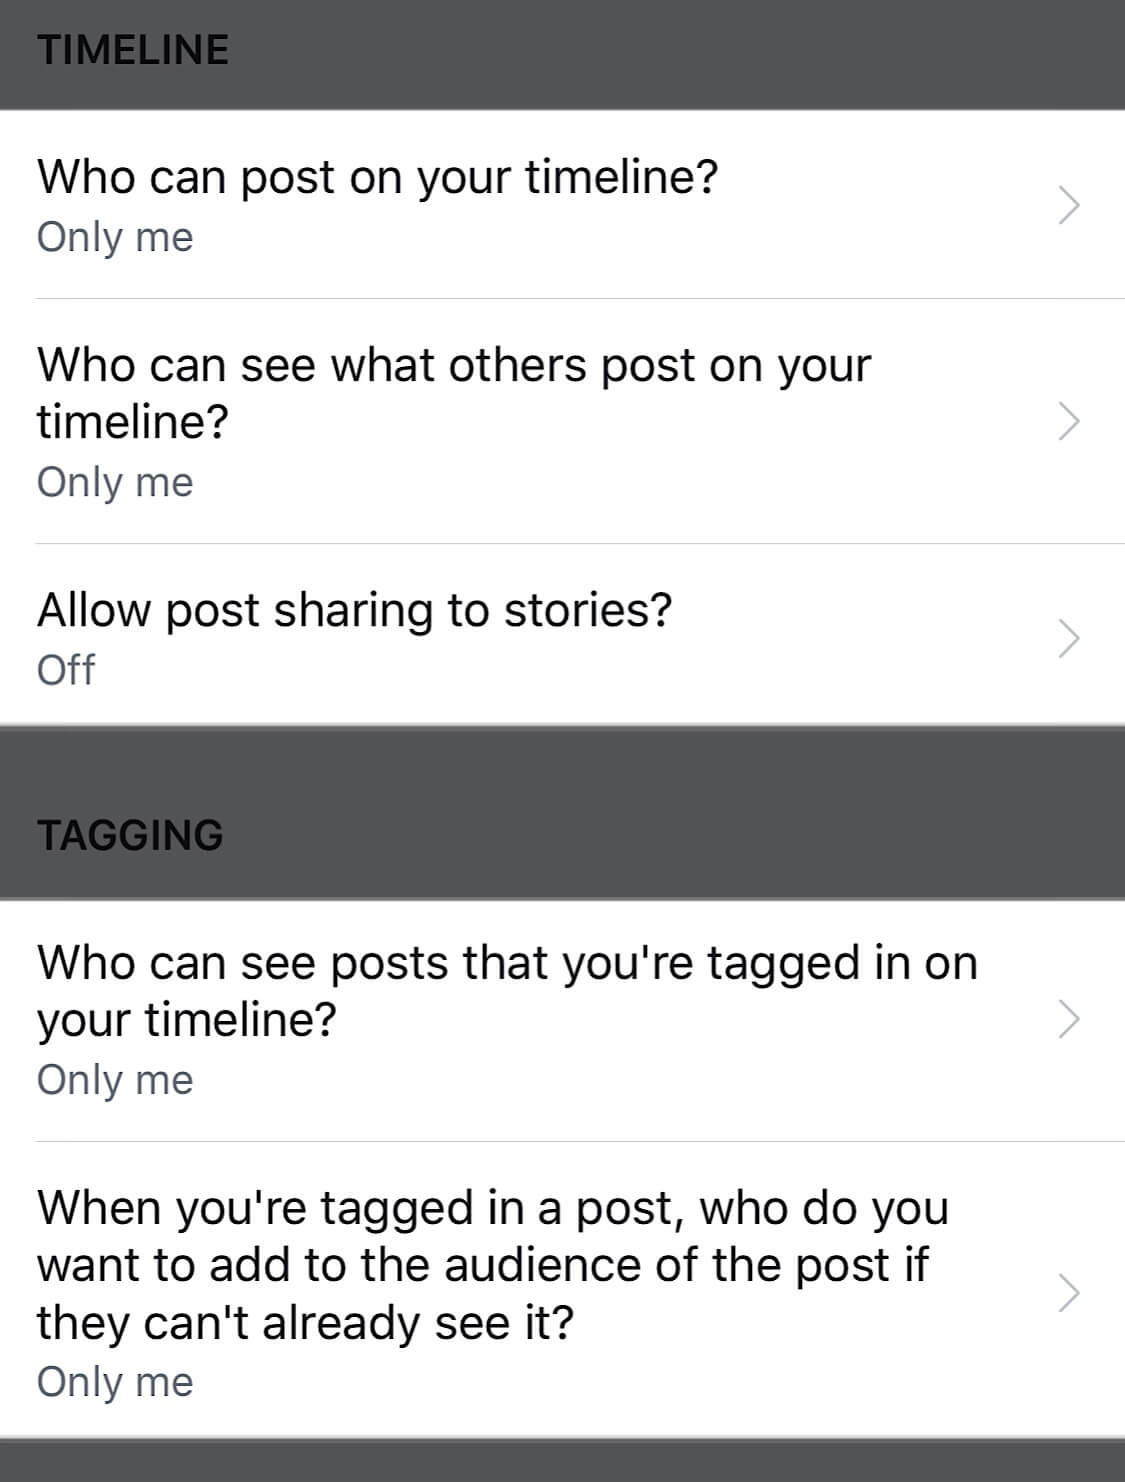 Screenshots showing the specific timeline and tagging settings you should change to limit data collection on Facebook.